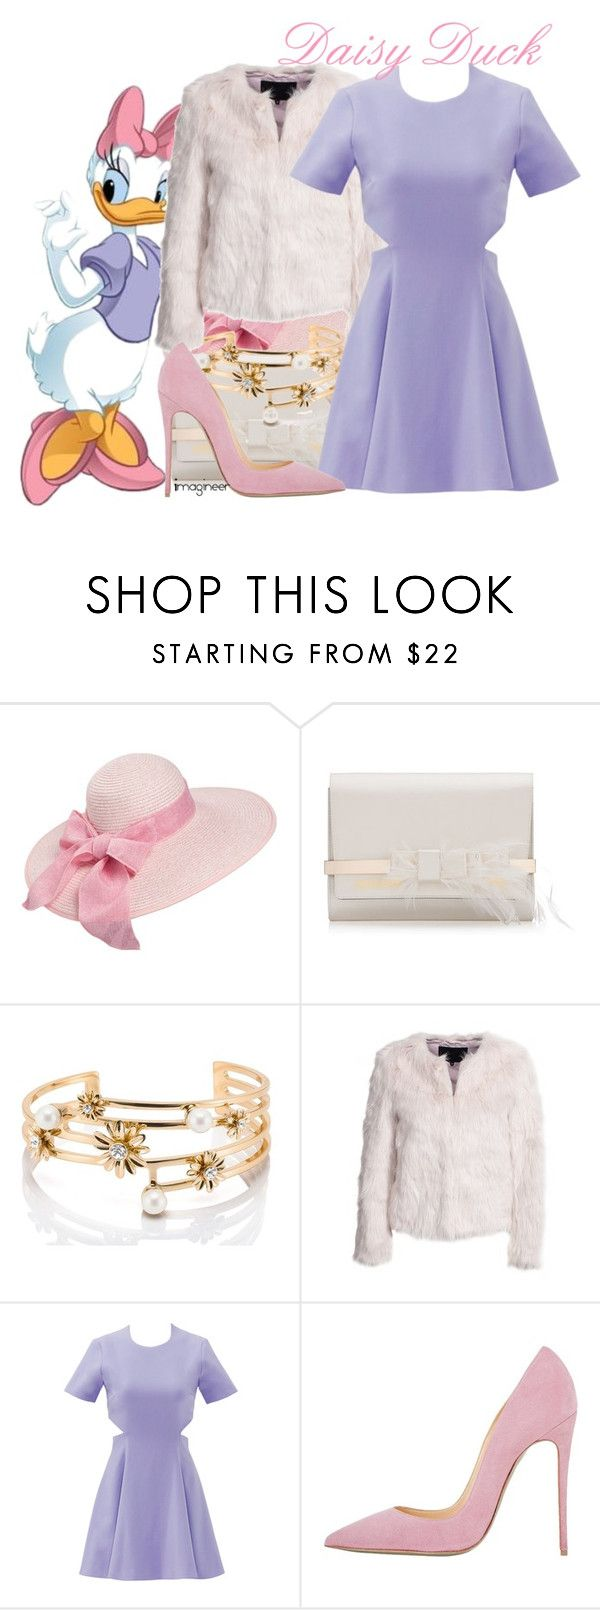 """""""Daisy Duck (Fab Five & Co.)"""" by claucrasoda ❤ liked on Polyvore featuring Kate Spade, mbyM, Elizabeth and James and fauxfurcoats"""